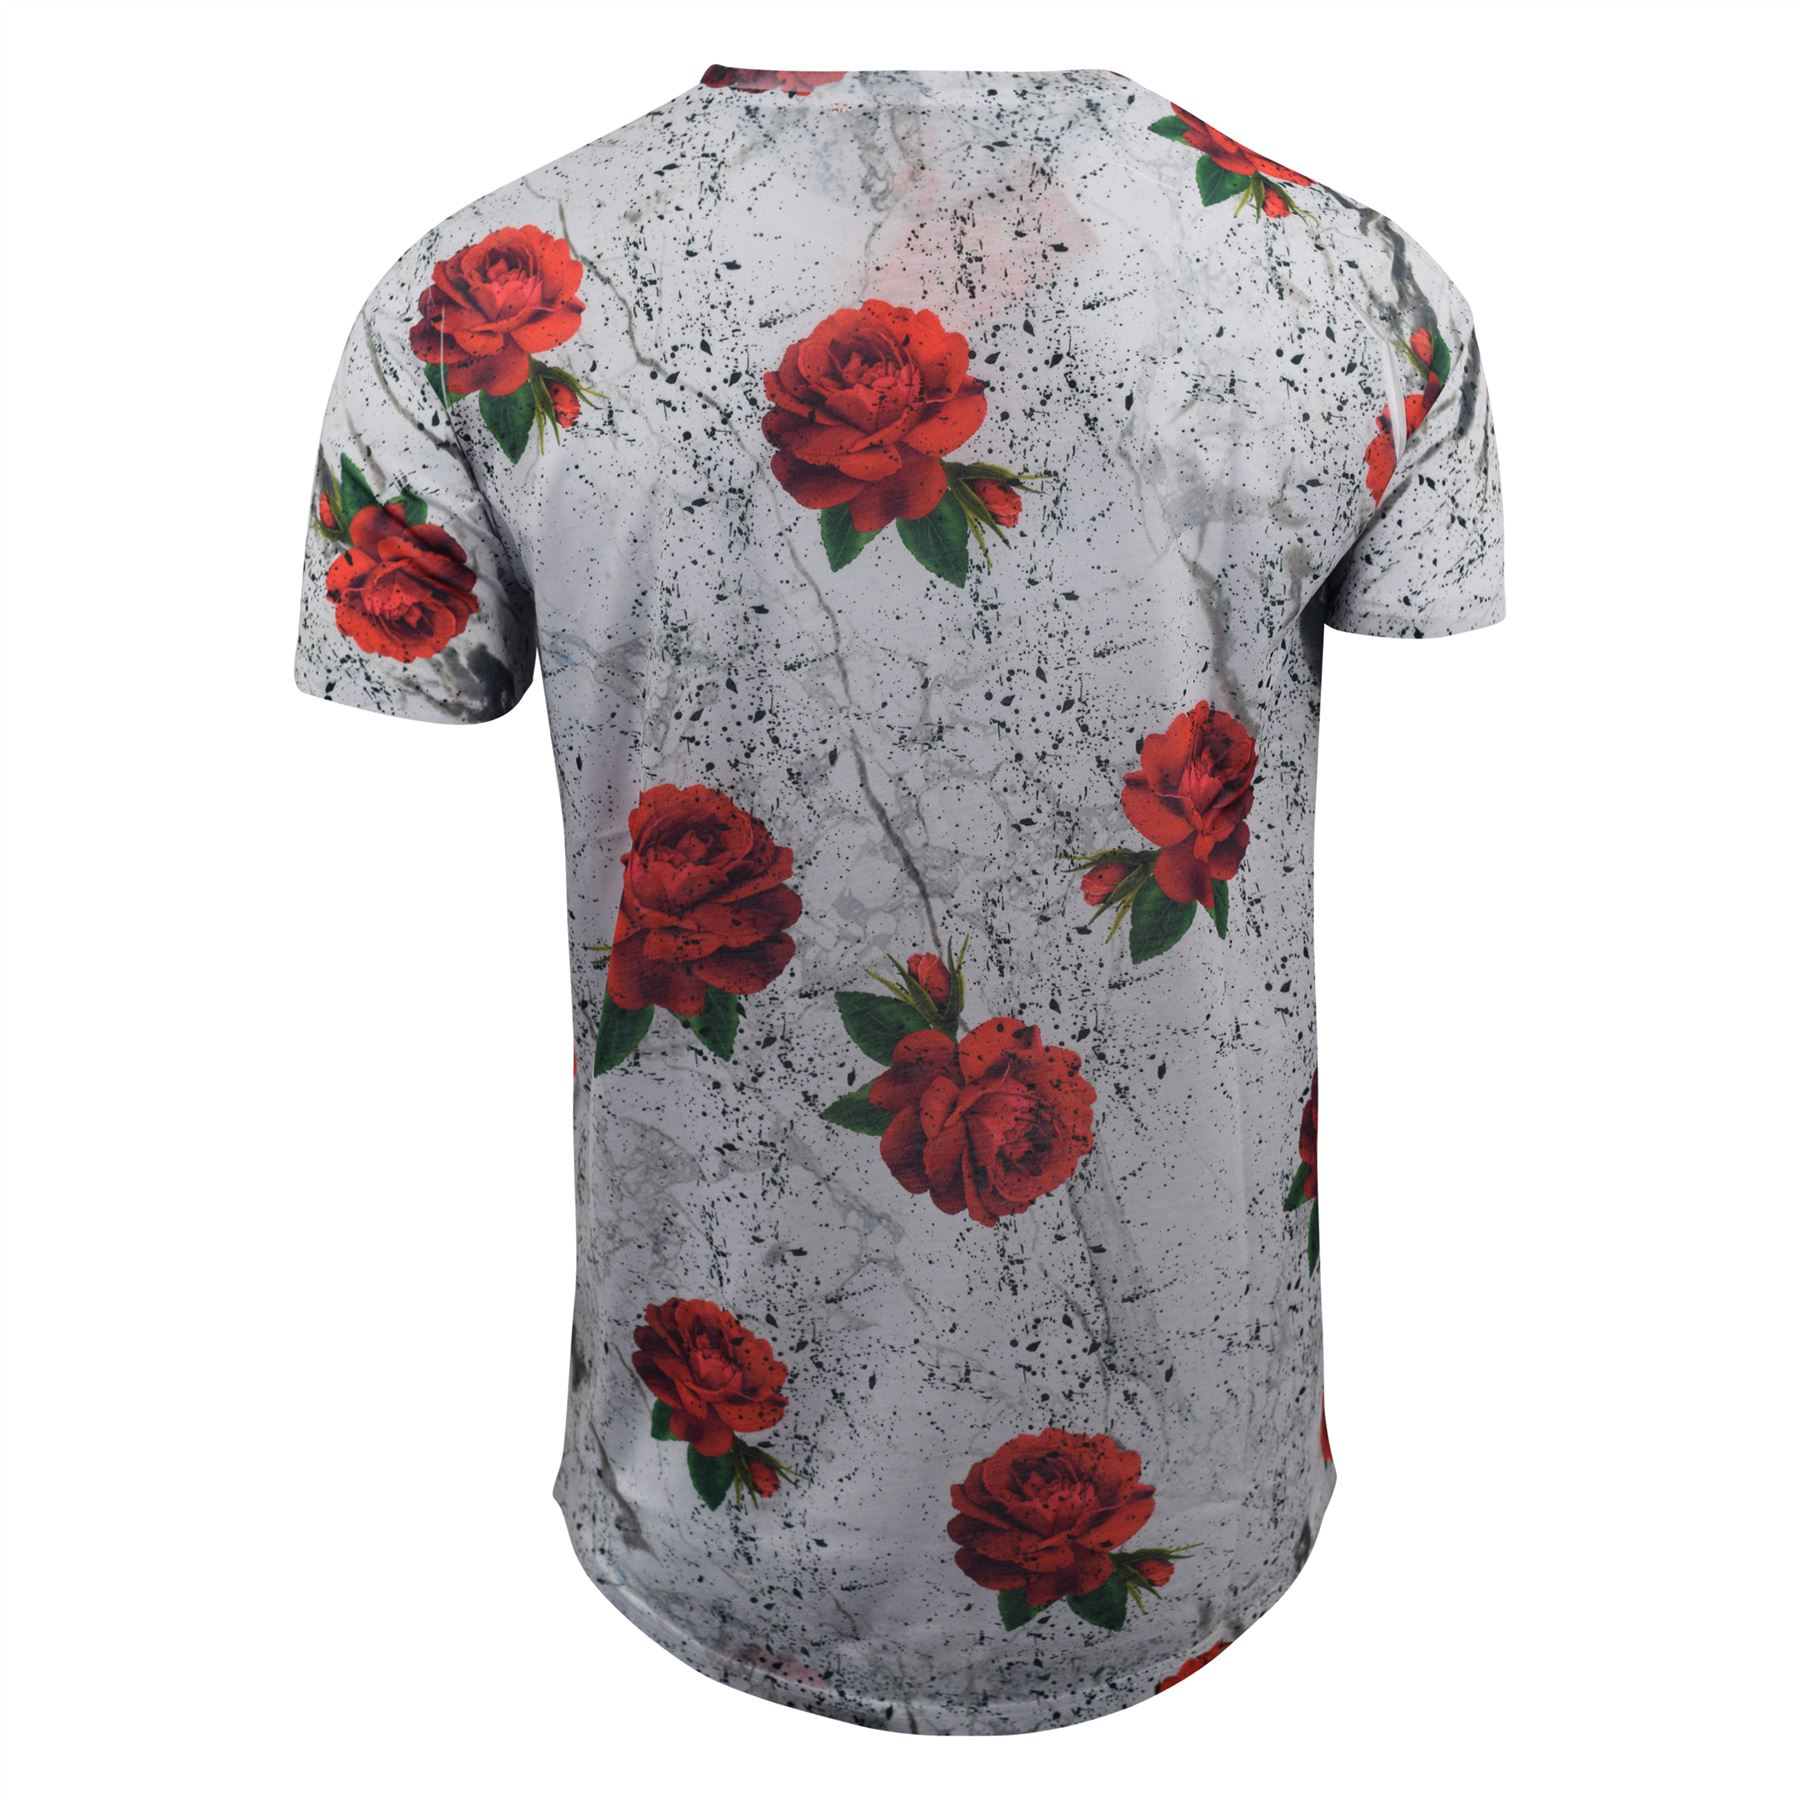 Mens-T-Shirt-Juice-Floral-Print-Flower-Crew-Neck-Tee-Top thumbnail 10